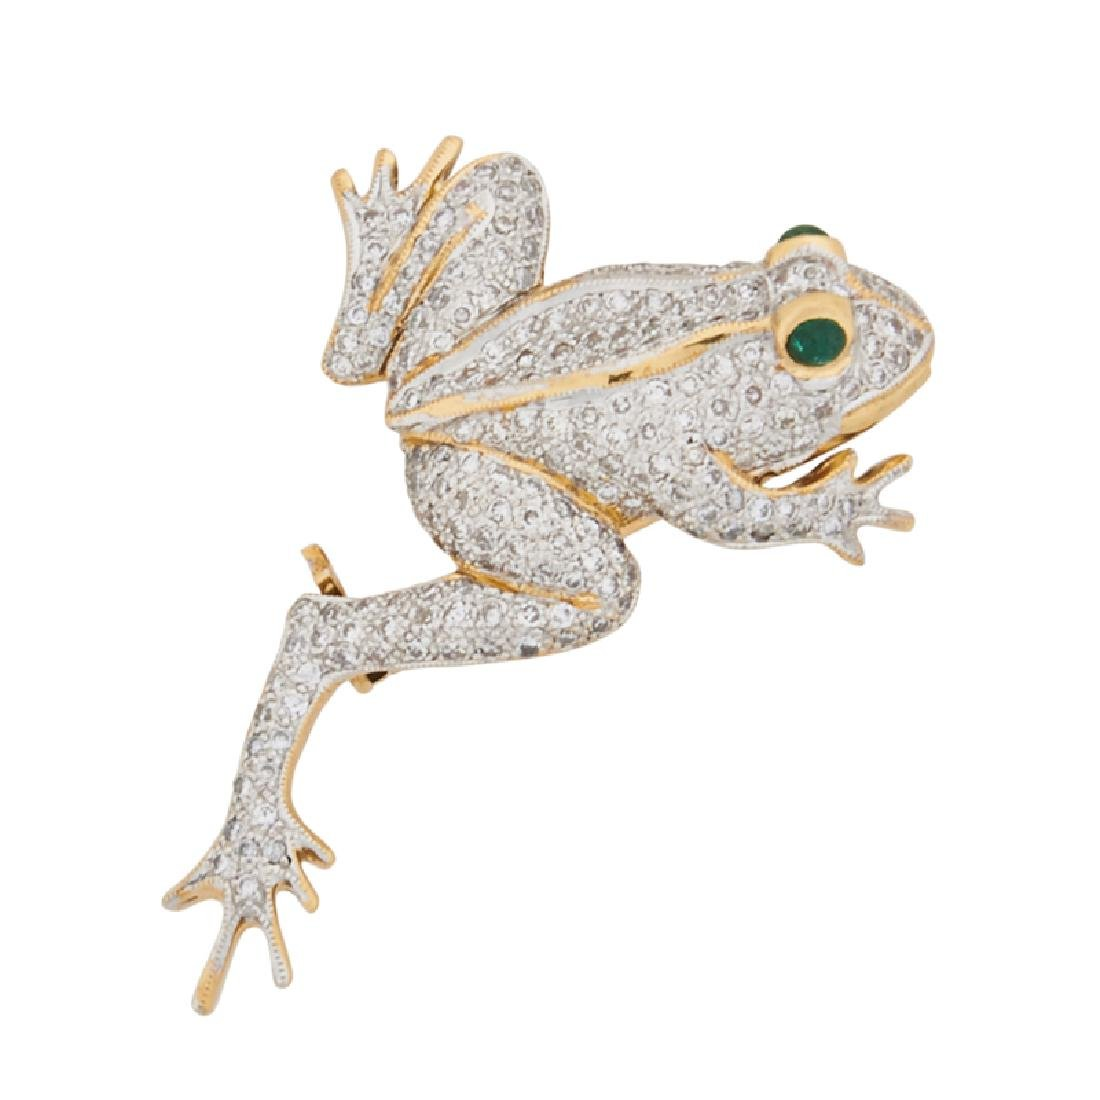 DIAMOND, EMERALD & YELLOW GOLD FROG BROOCH